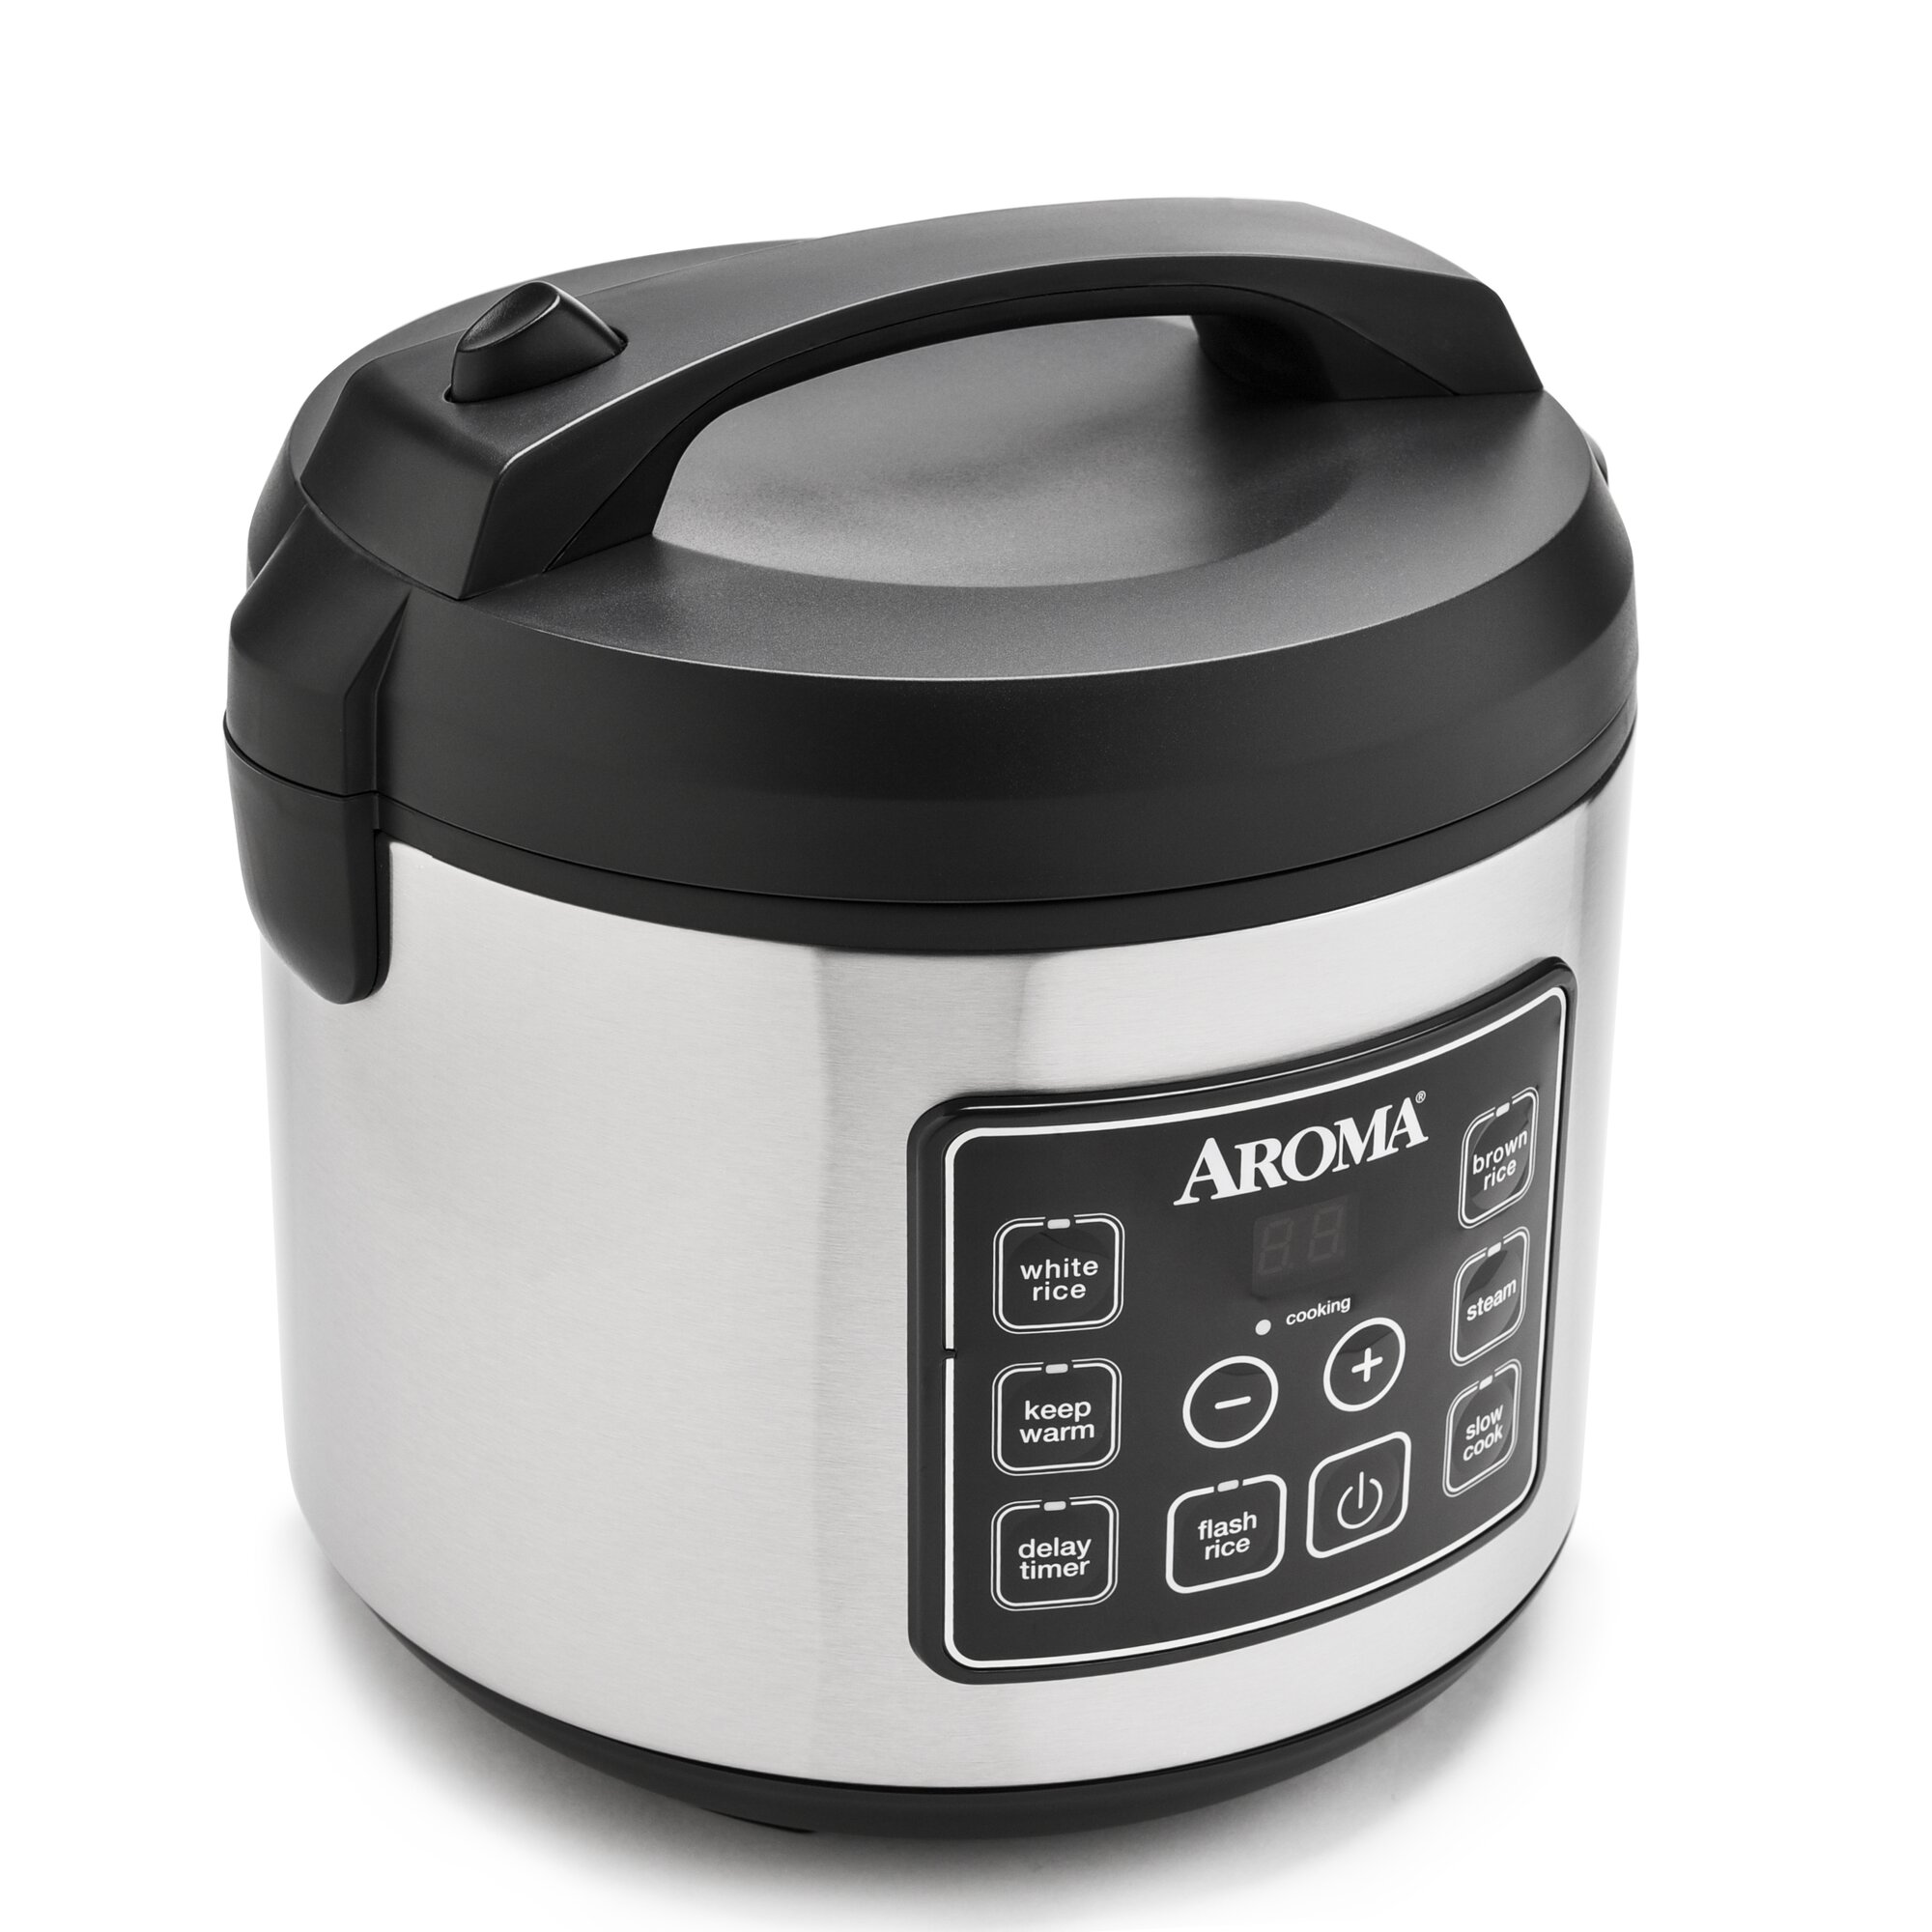 Aroma Digital Rice Cooker And Food Steamer: Aroma 20-Cup